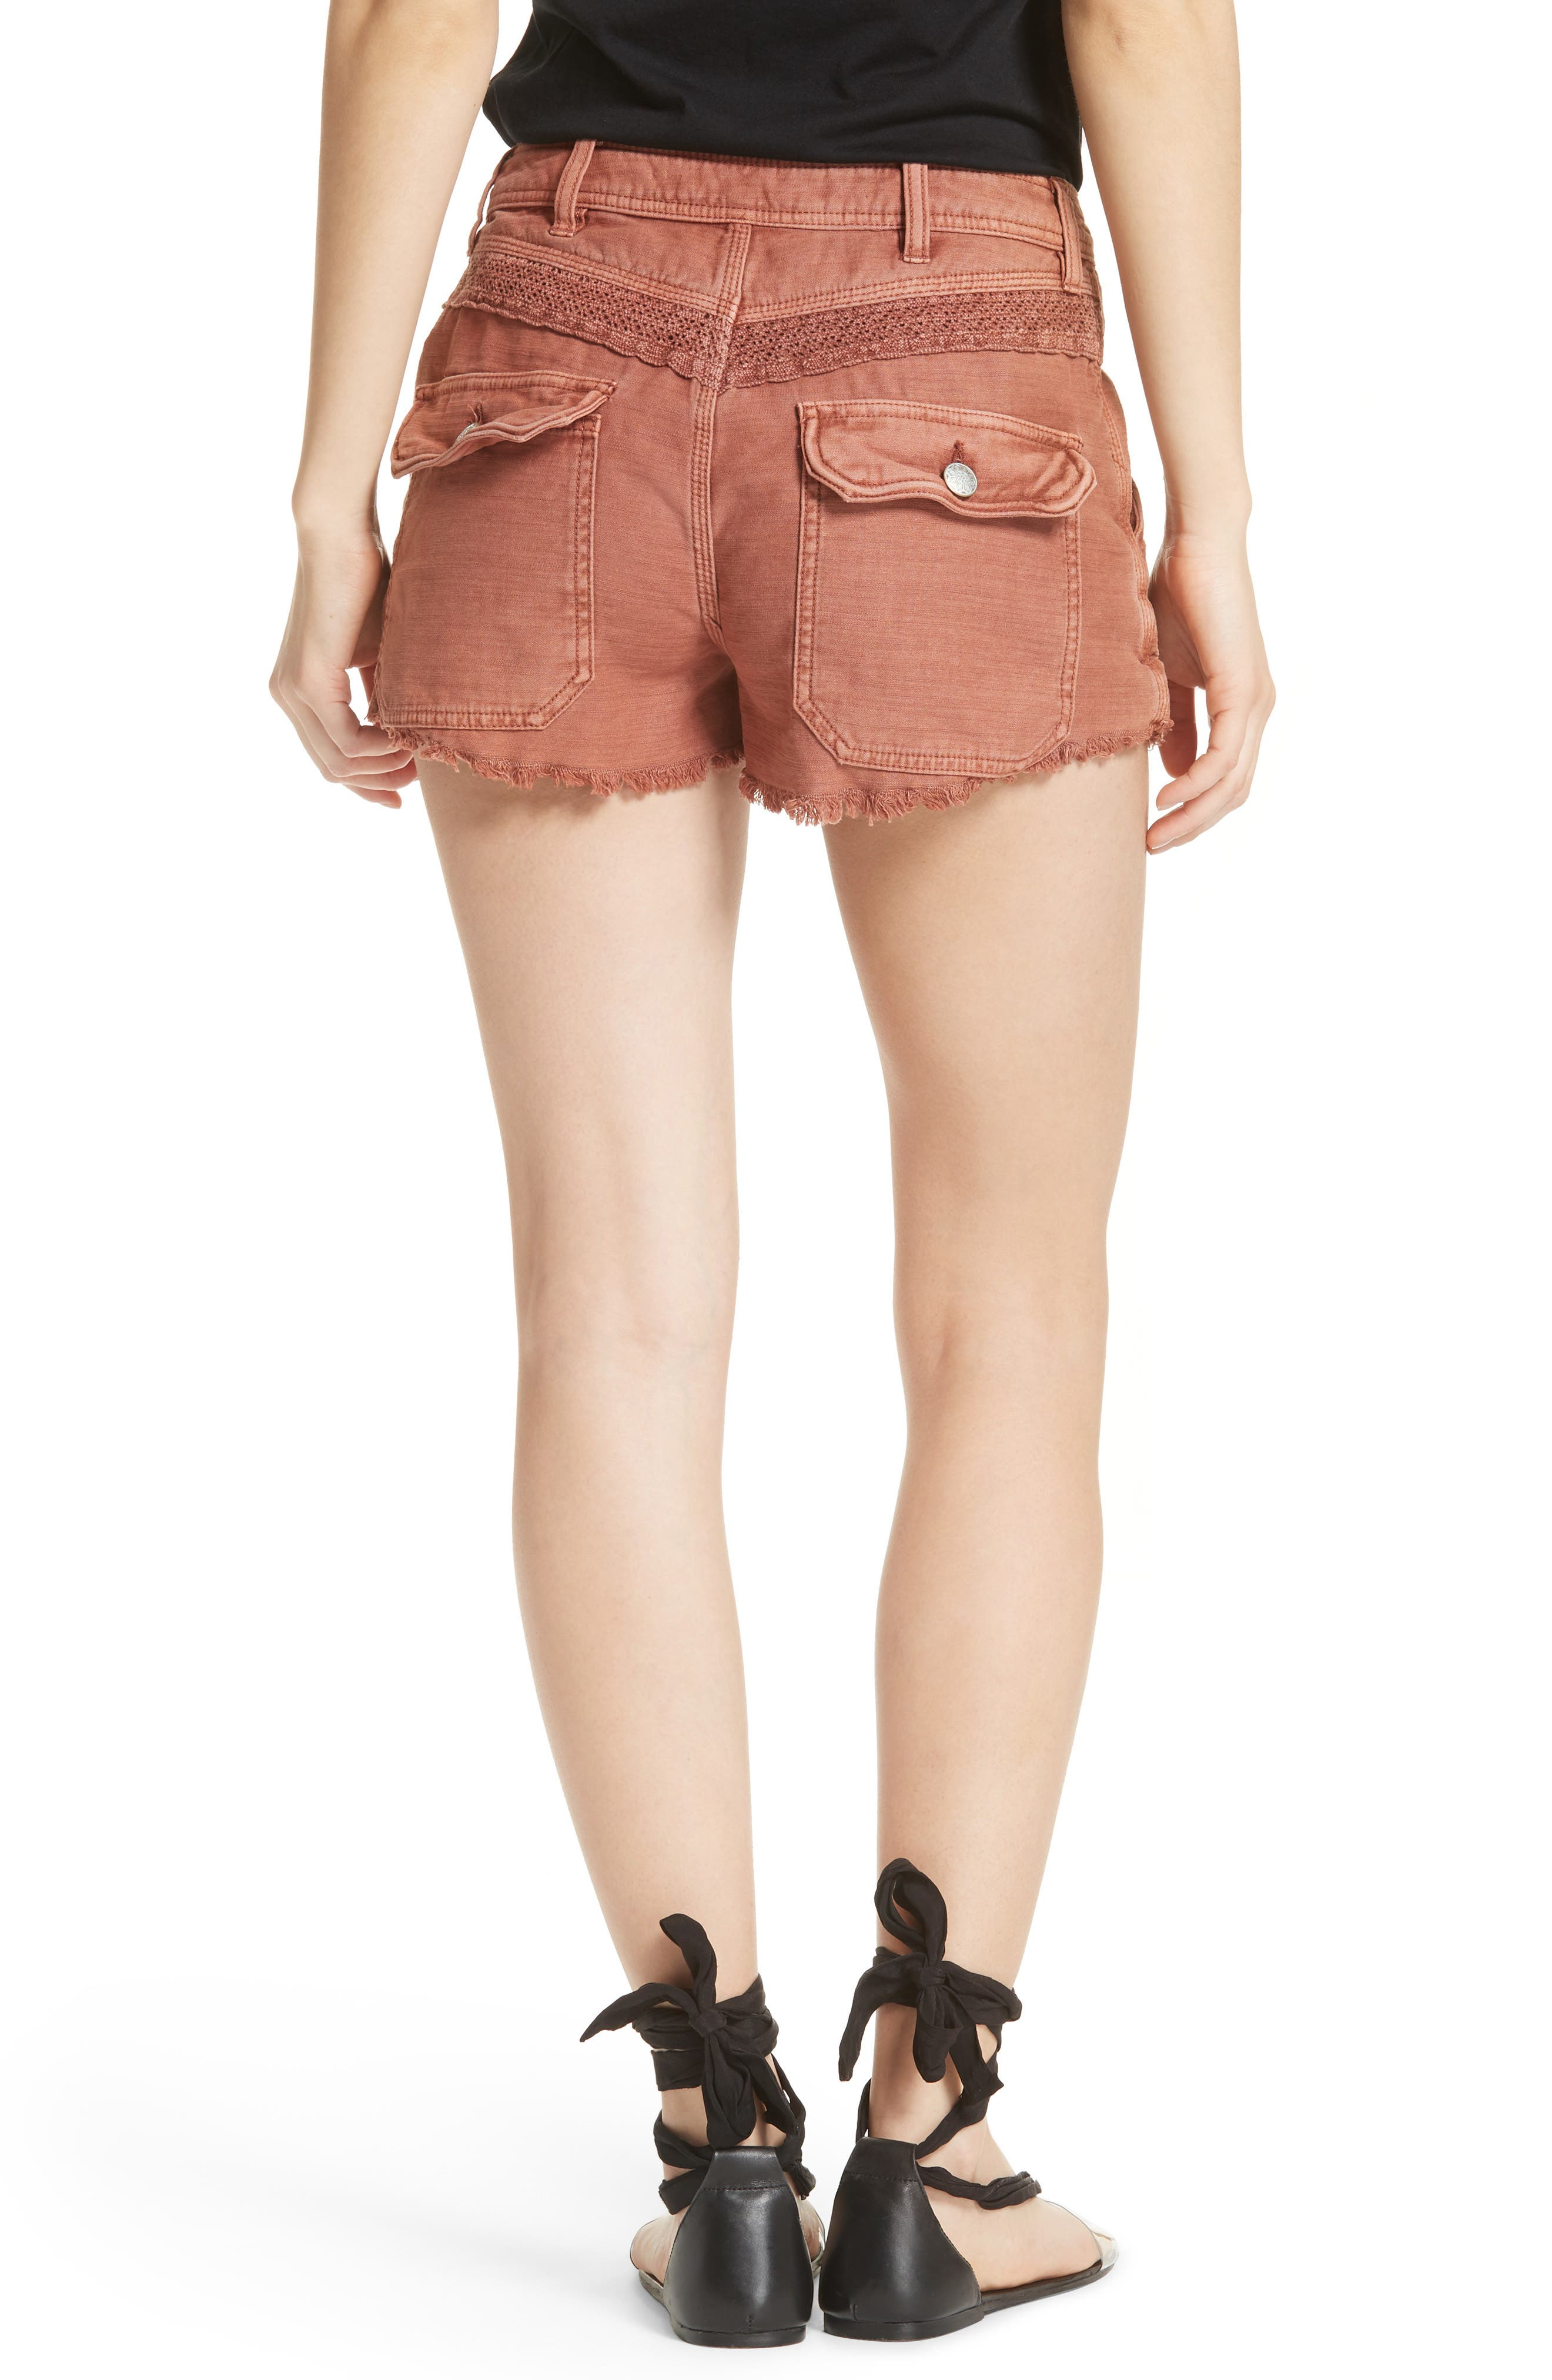 Great Expectations Lace Cutout Shorts,                             Alternate thumbnail 4, color,